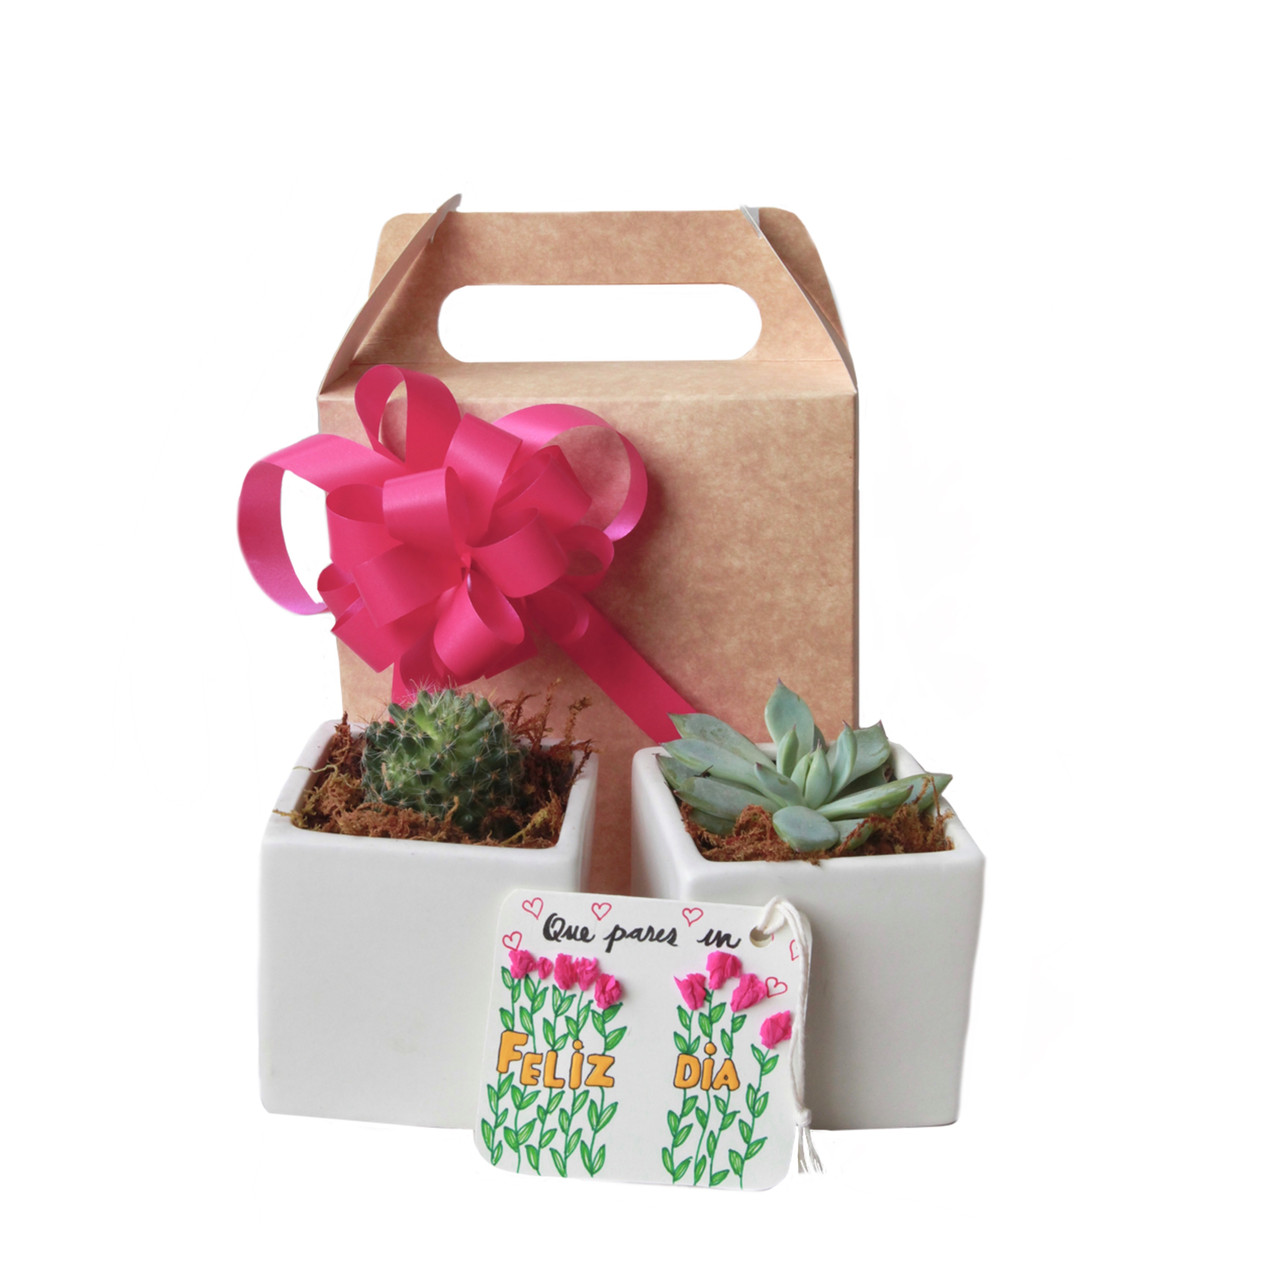 cactus/succulent duo gift set  with white pots + gift tag